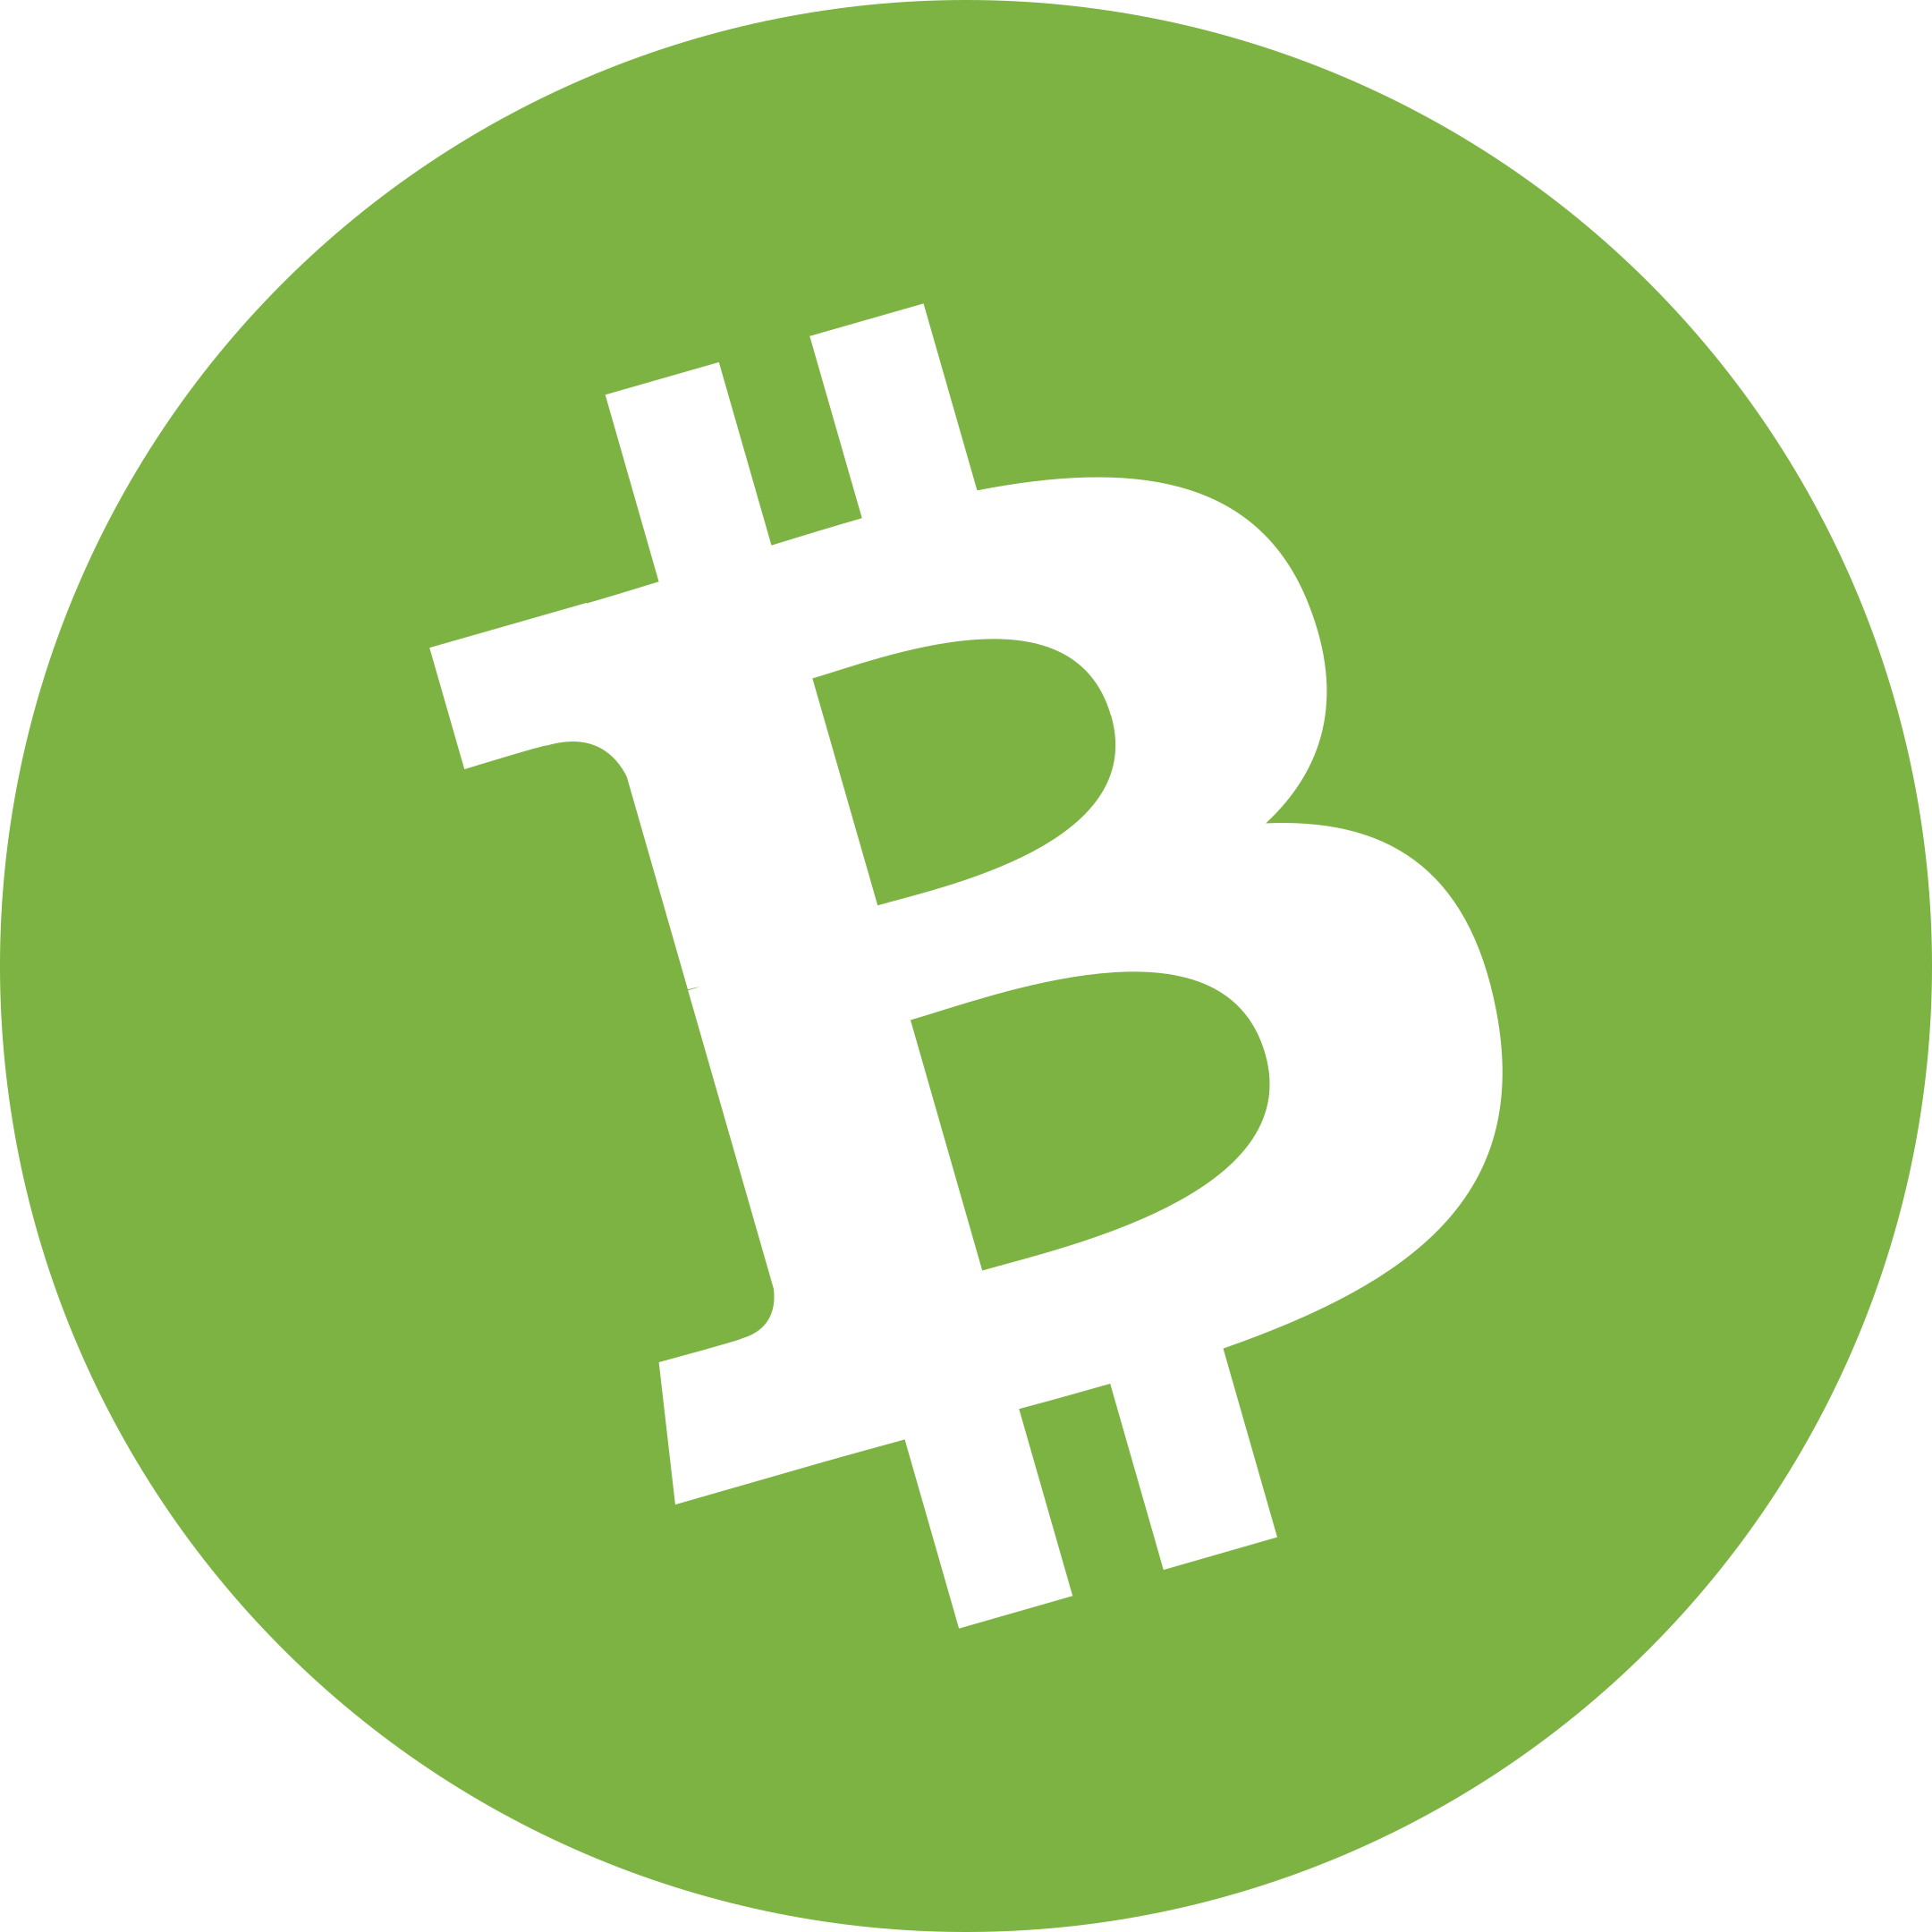 bitcoin cash logo 1 - Bitcoin Cash Logo